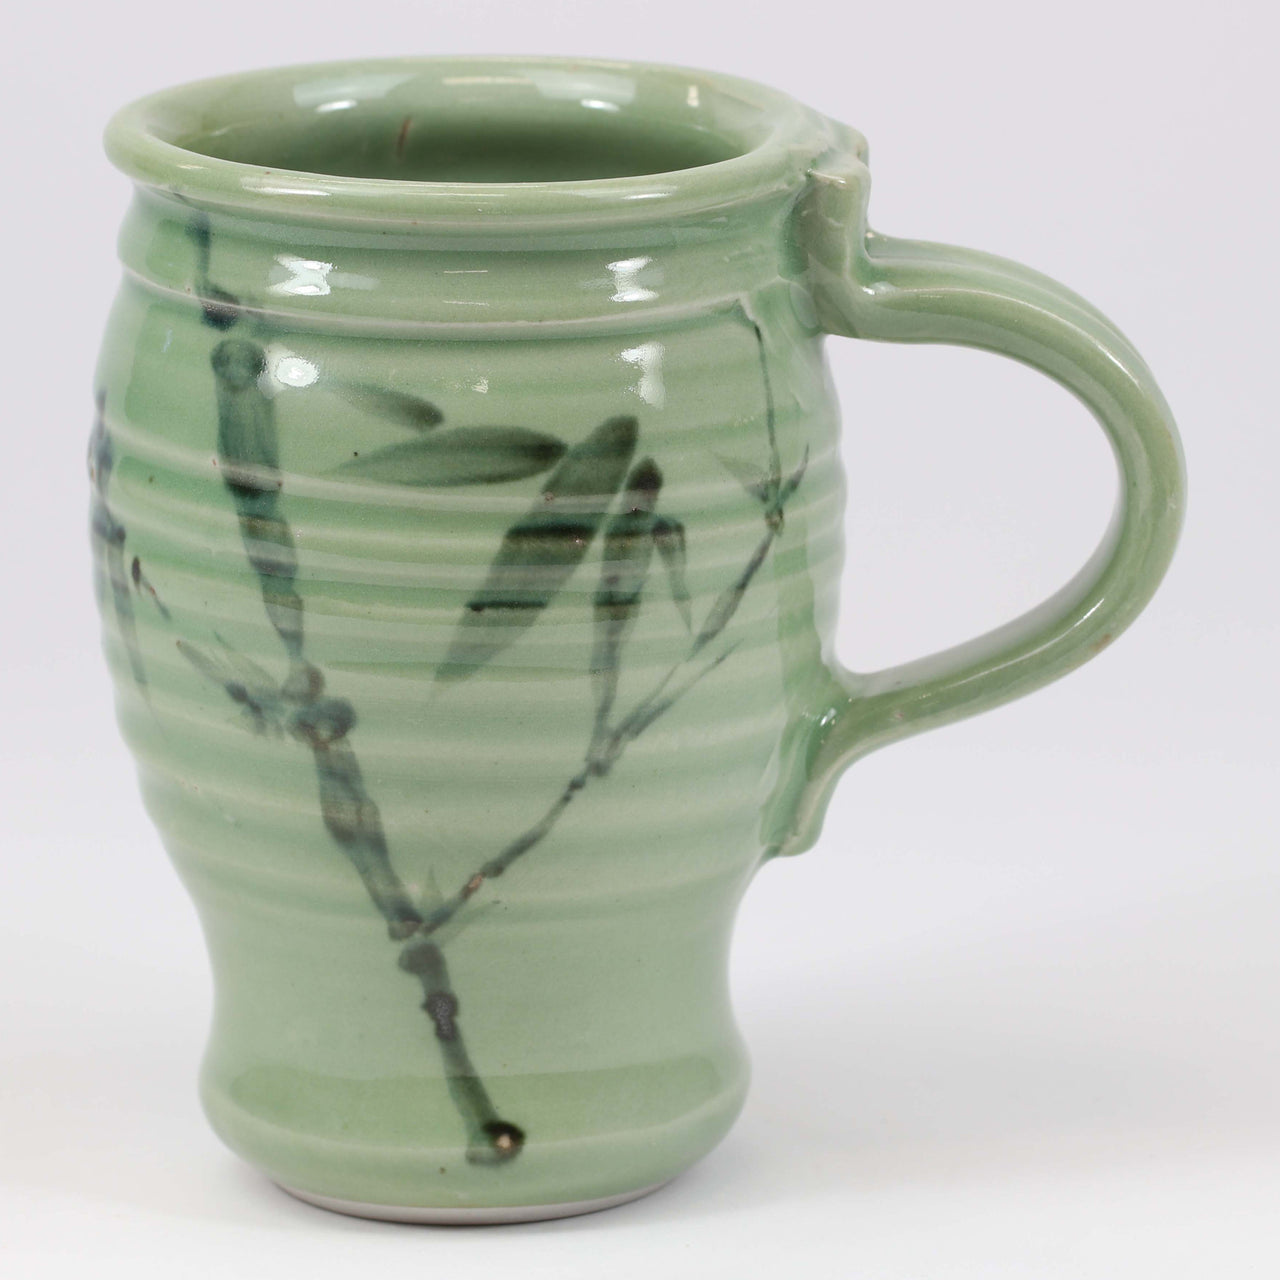 Large 16 oz. Mug: Green Celadon Bamboo Pattern